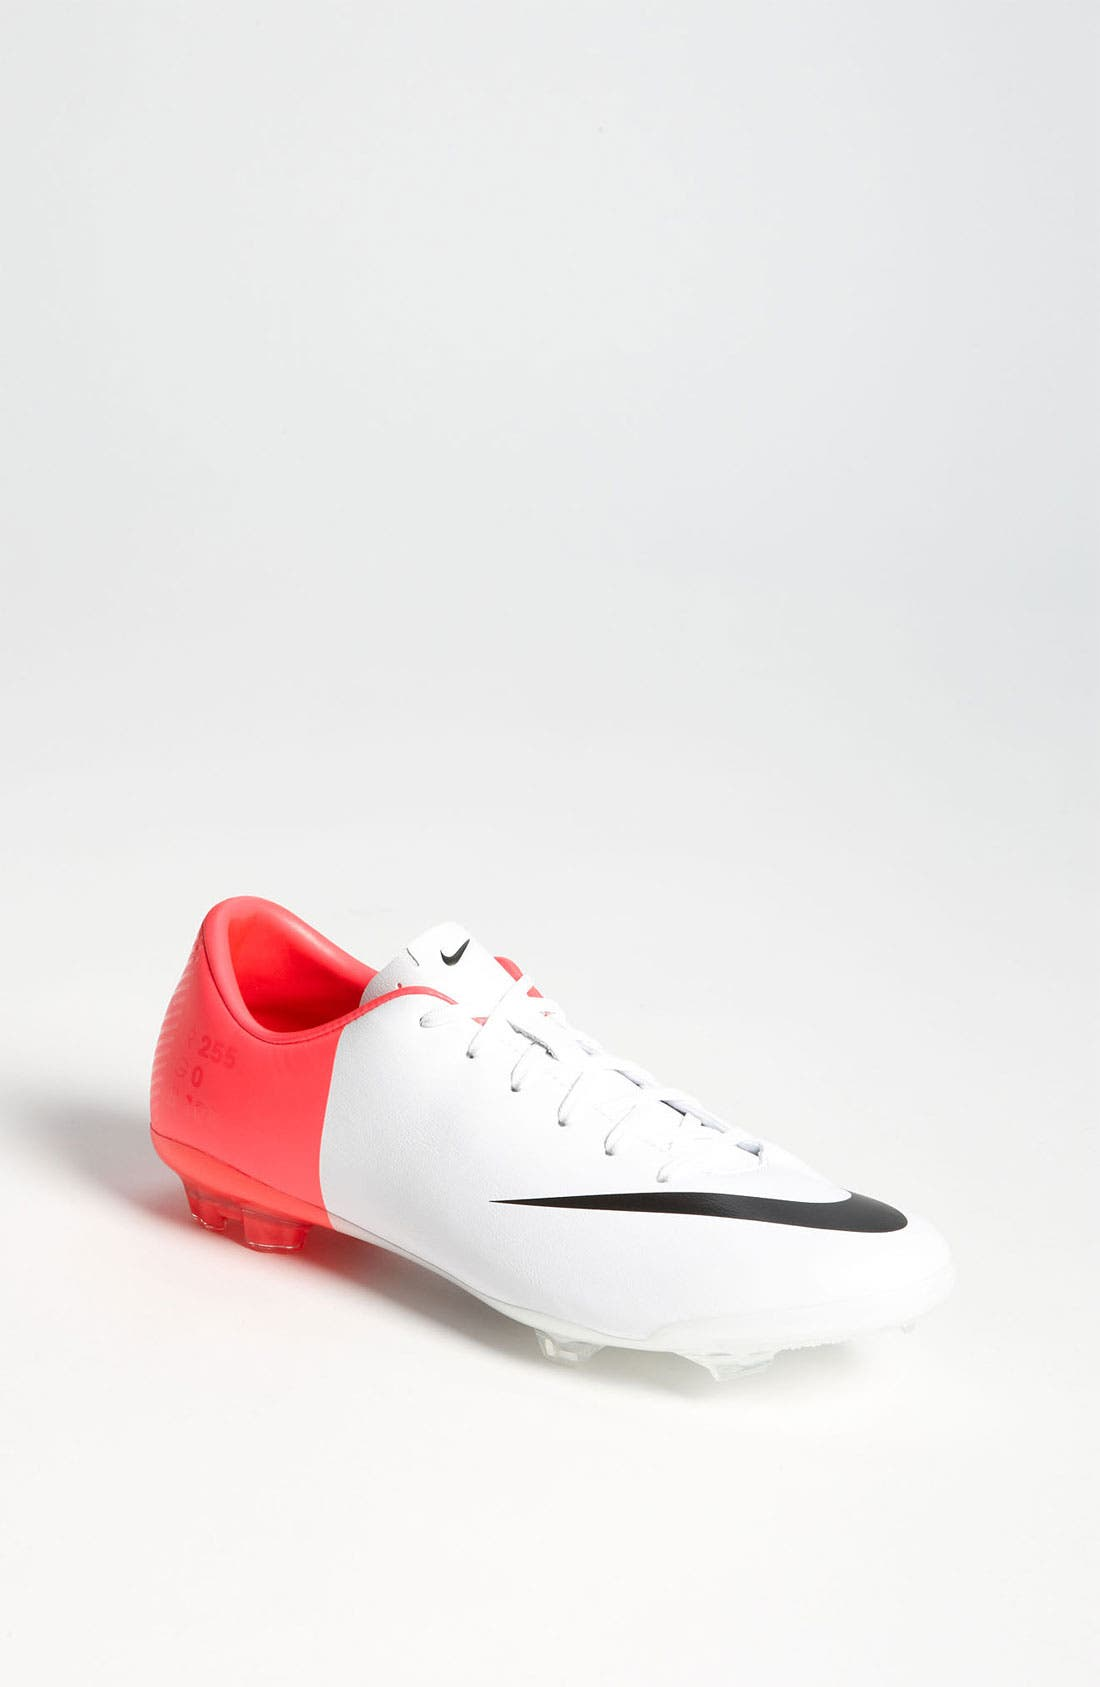 Alternate Image 1 Selected - Nike 'Mercurial Vapor VIII' Soccer Shoe (Little Kid & Big Kid)